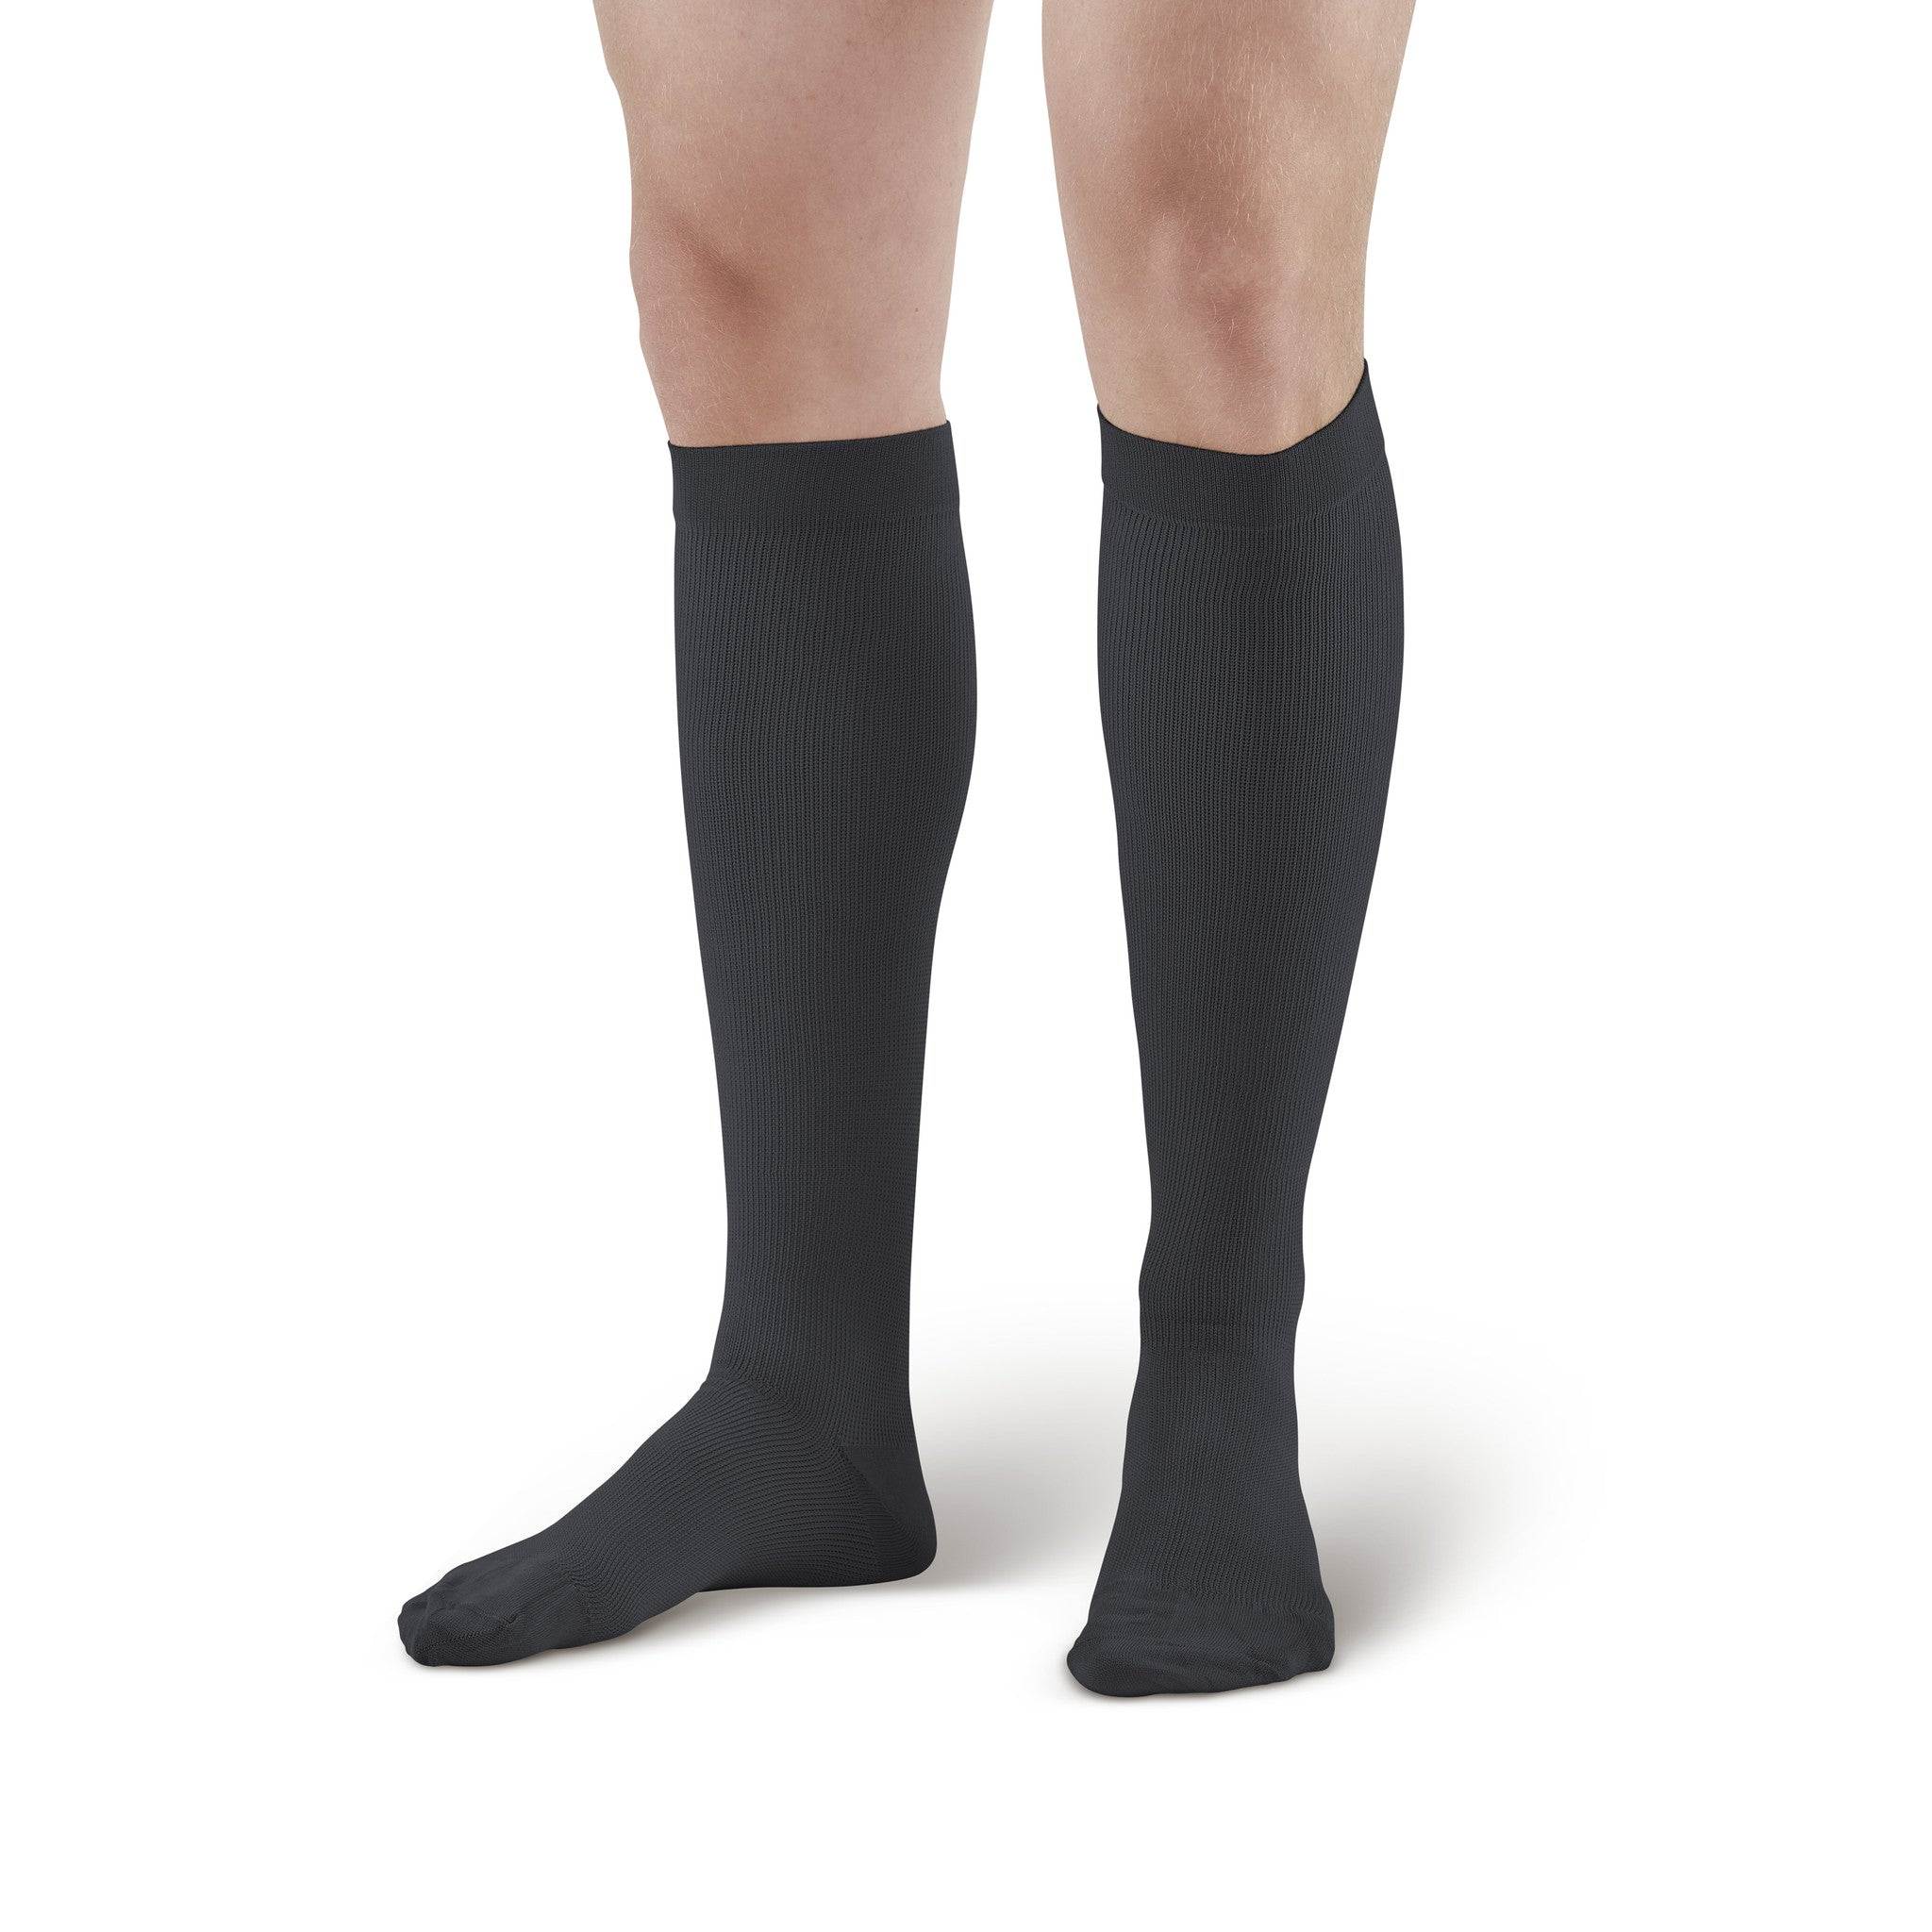 d80fc5a0ac Ames Walker Men Knee High Compression 30-40 mmhg l Low Price Guarantee